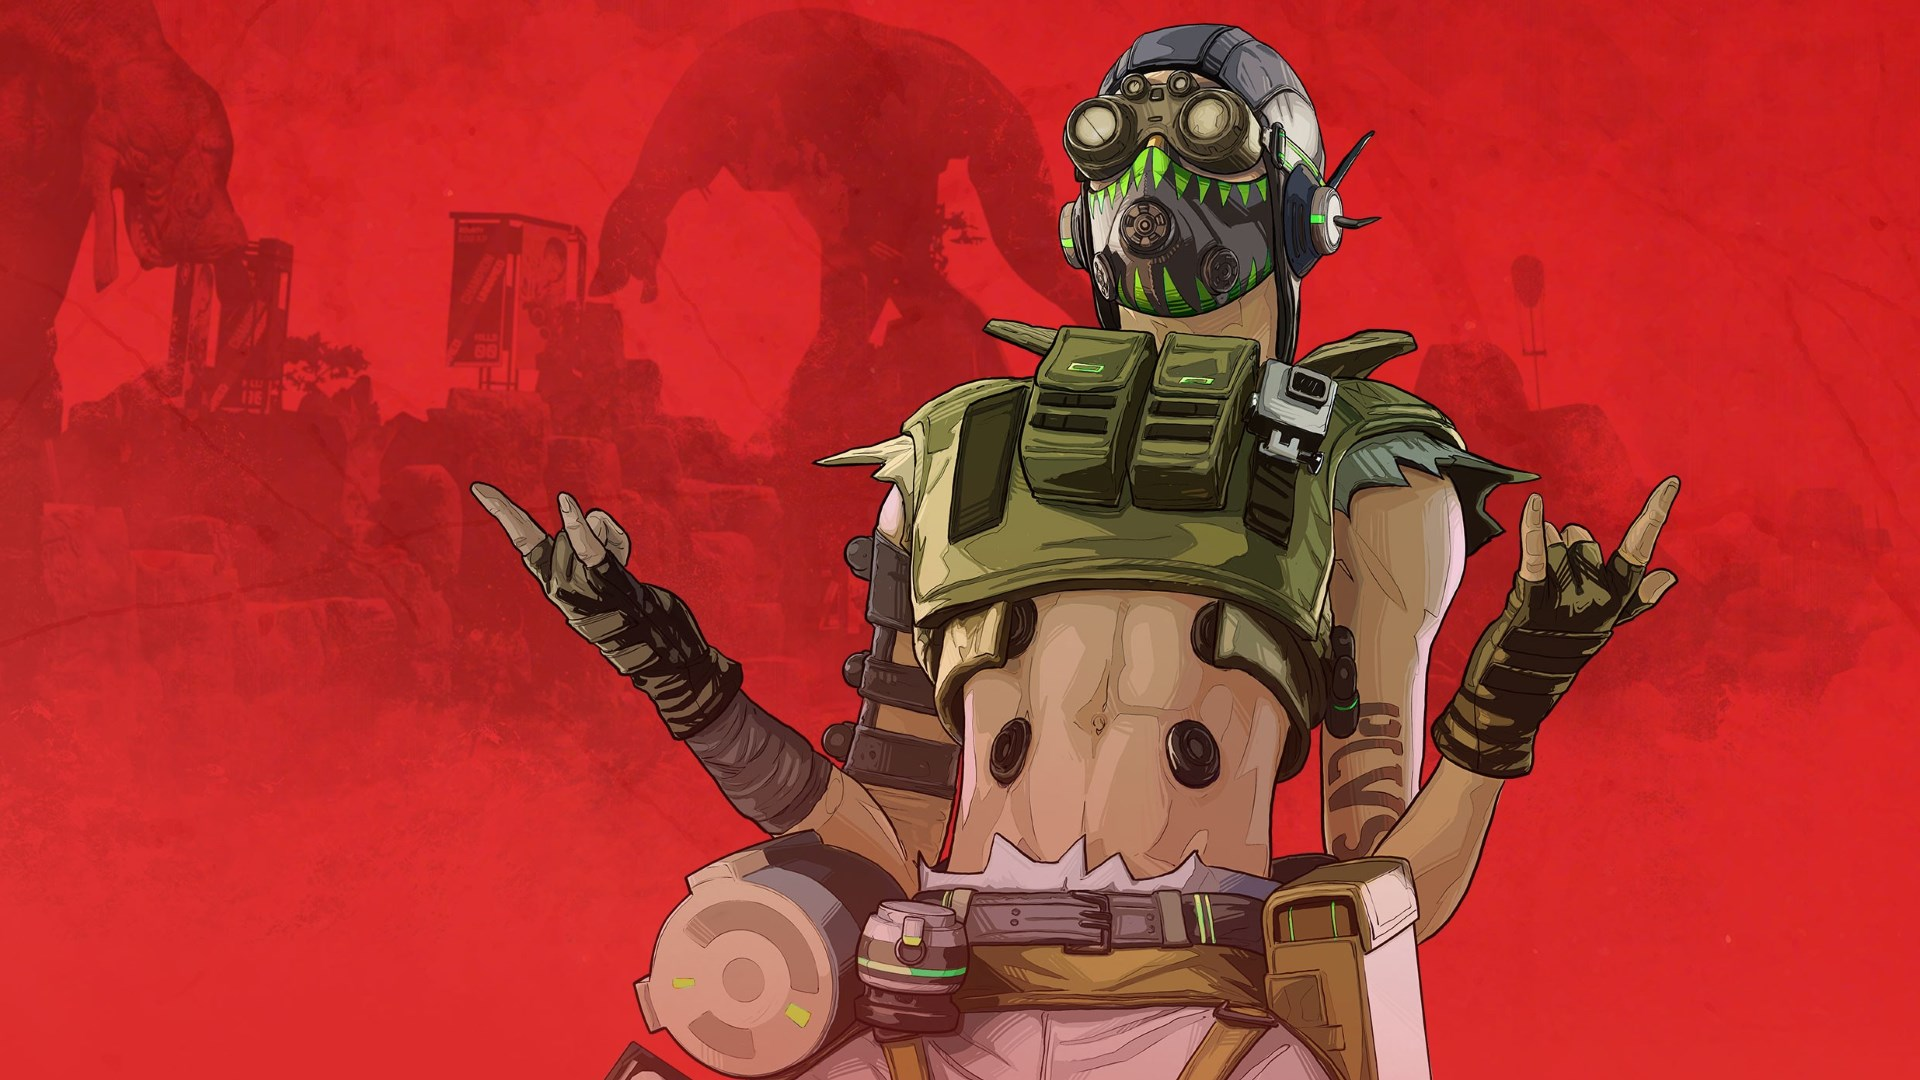 Octane Apex Legends Best Wallpapers Supertab Themes